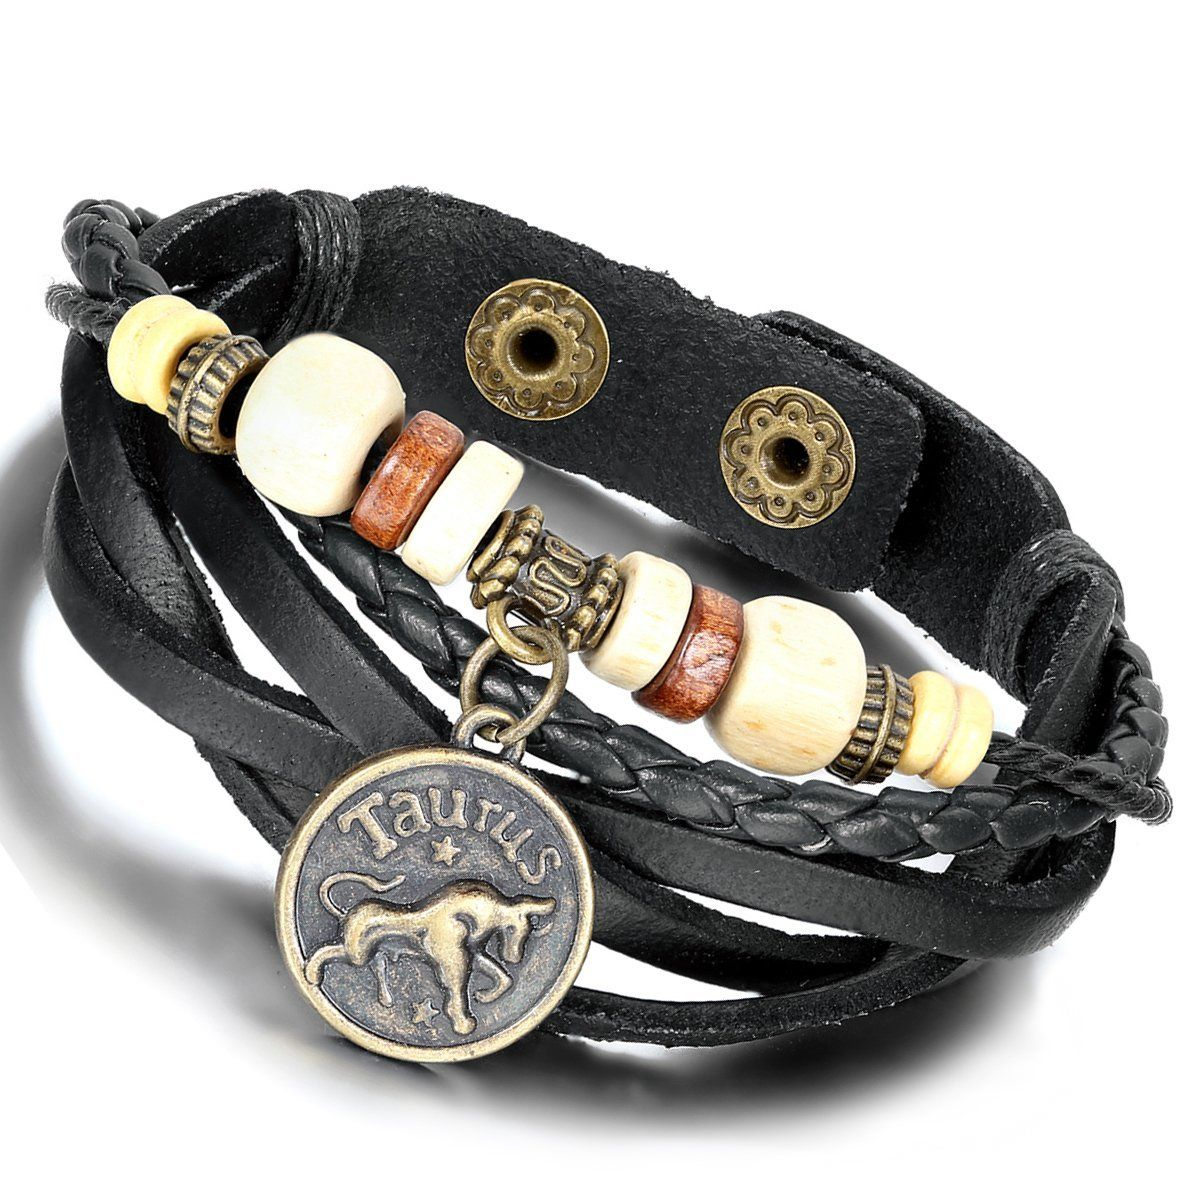 Amazon arocent handmade leather bracelet with constellation